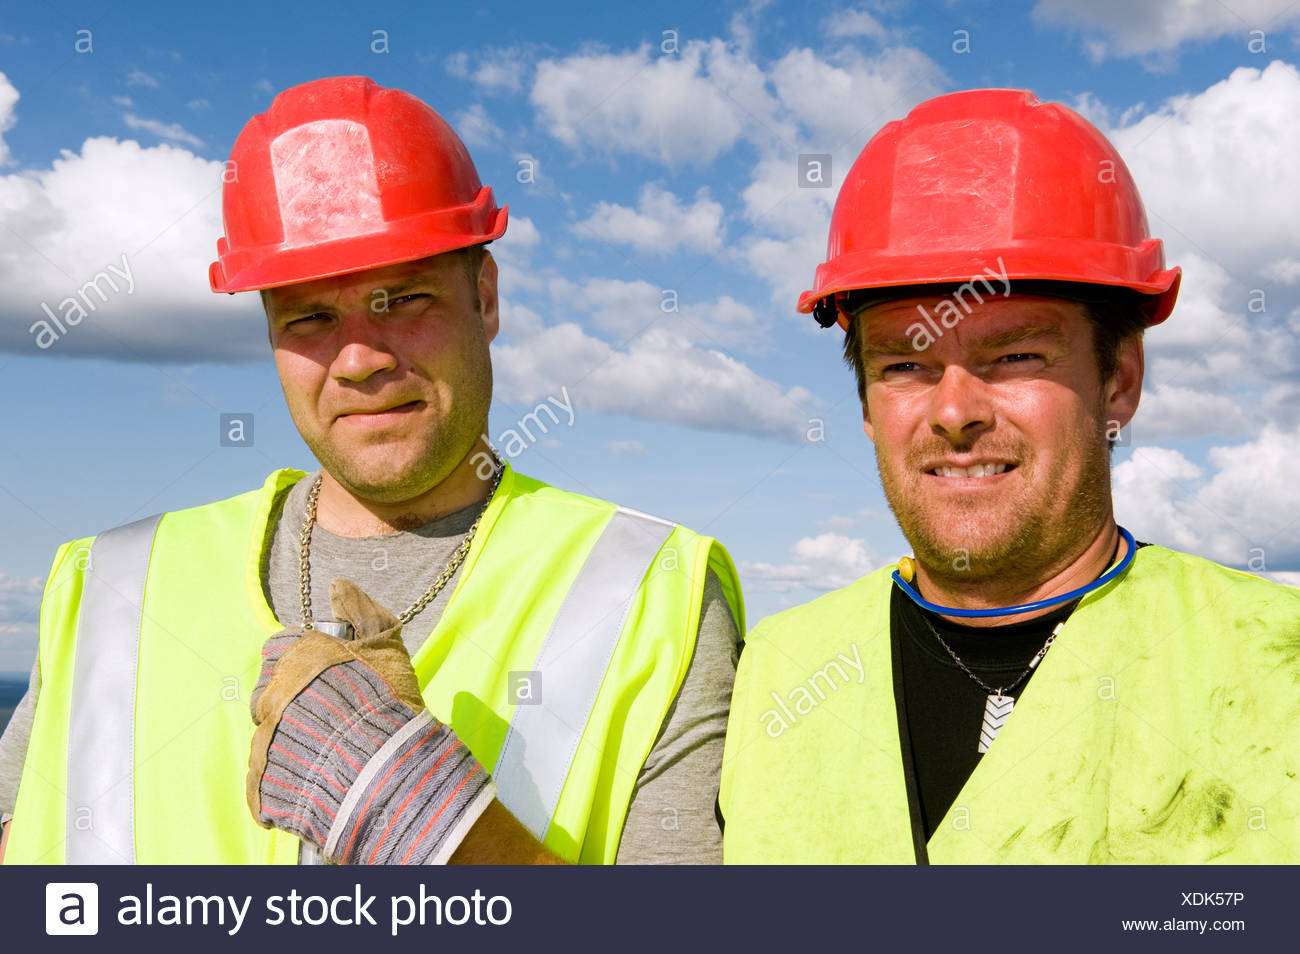 Construction workers smiling at camera - Stock Image